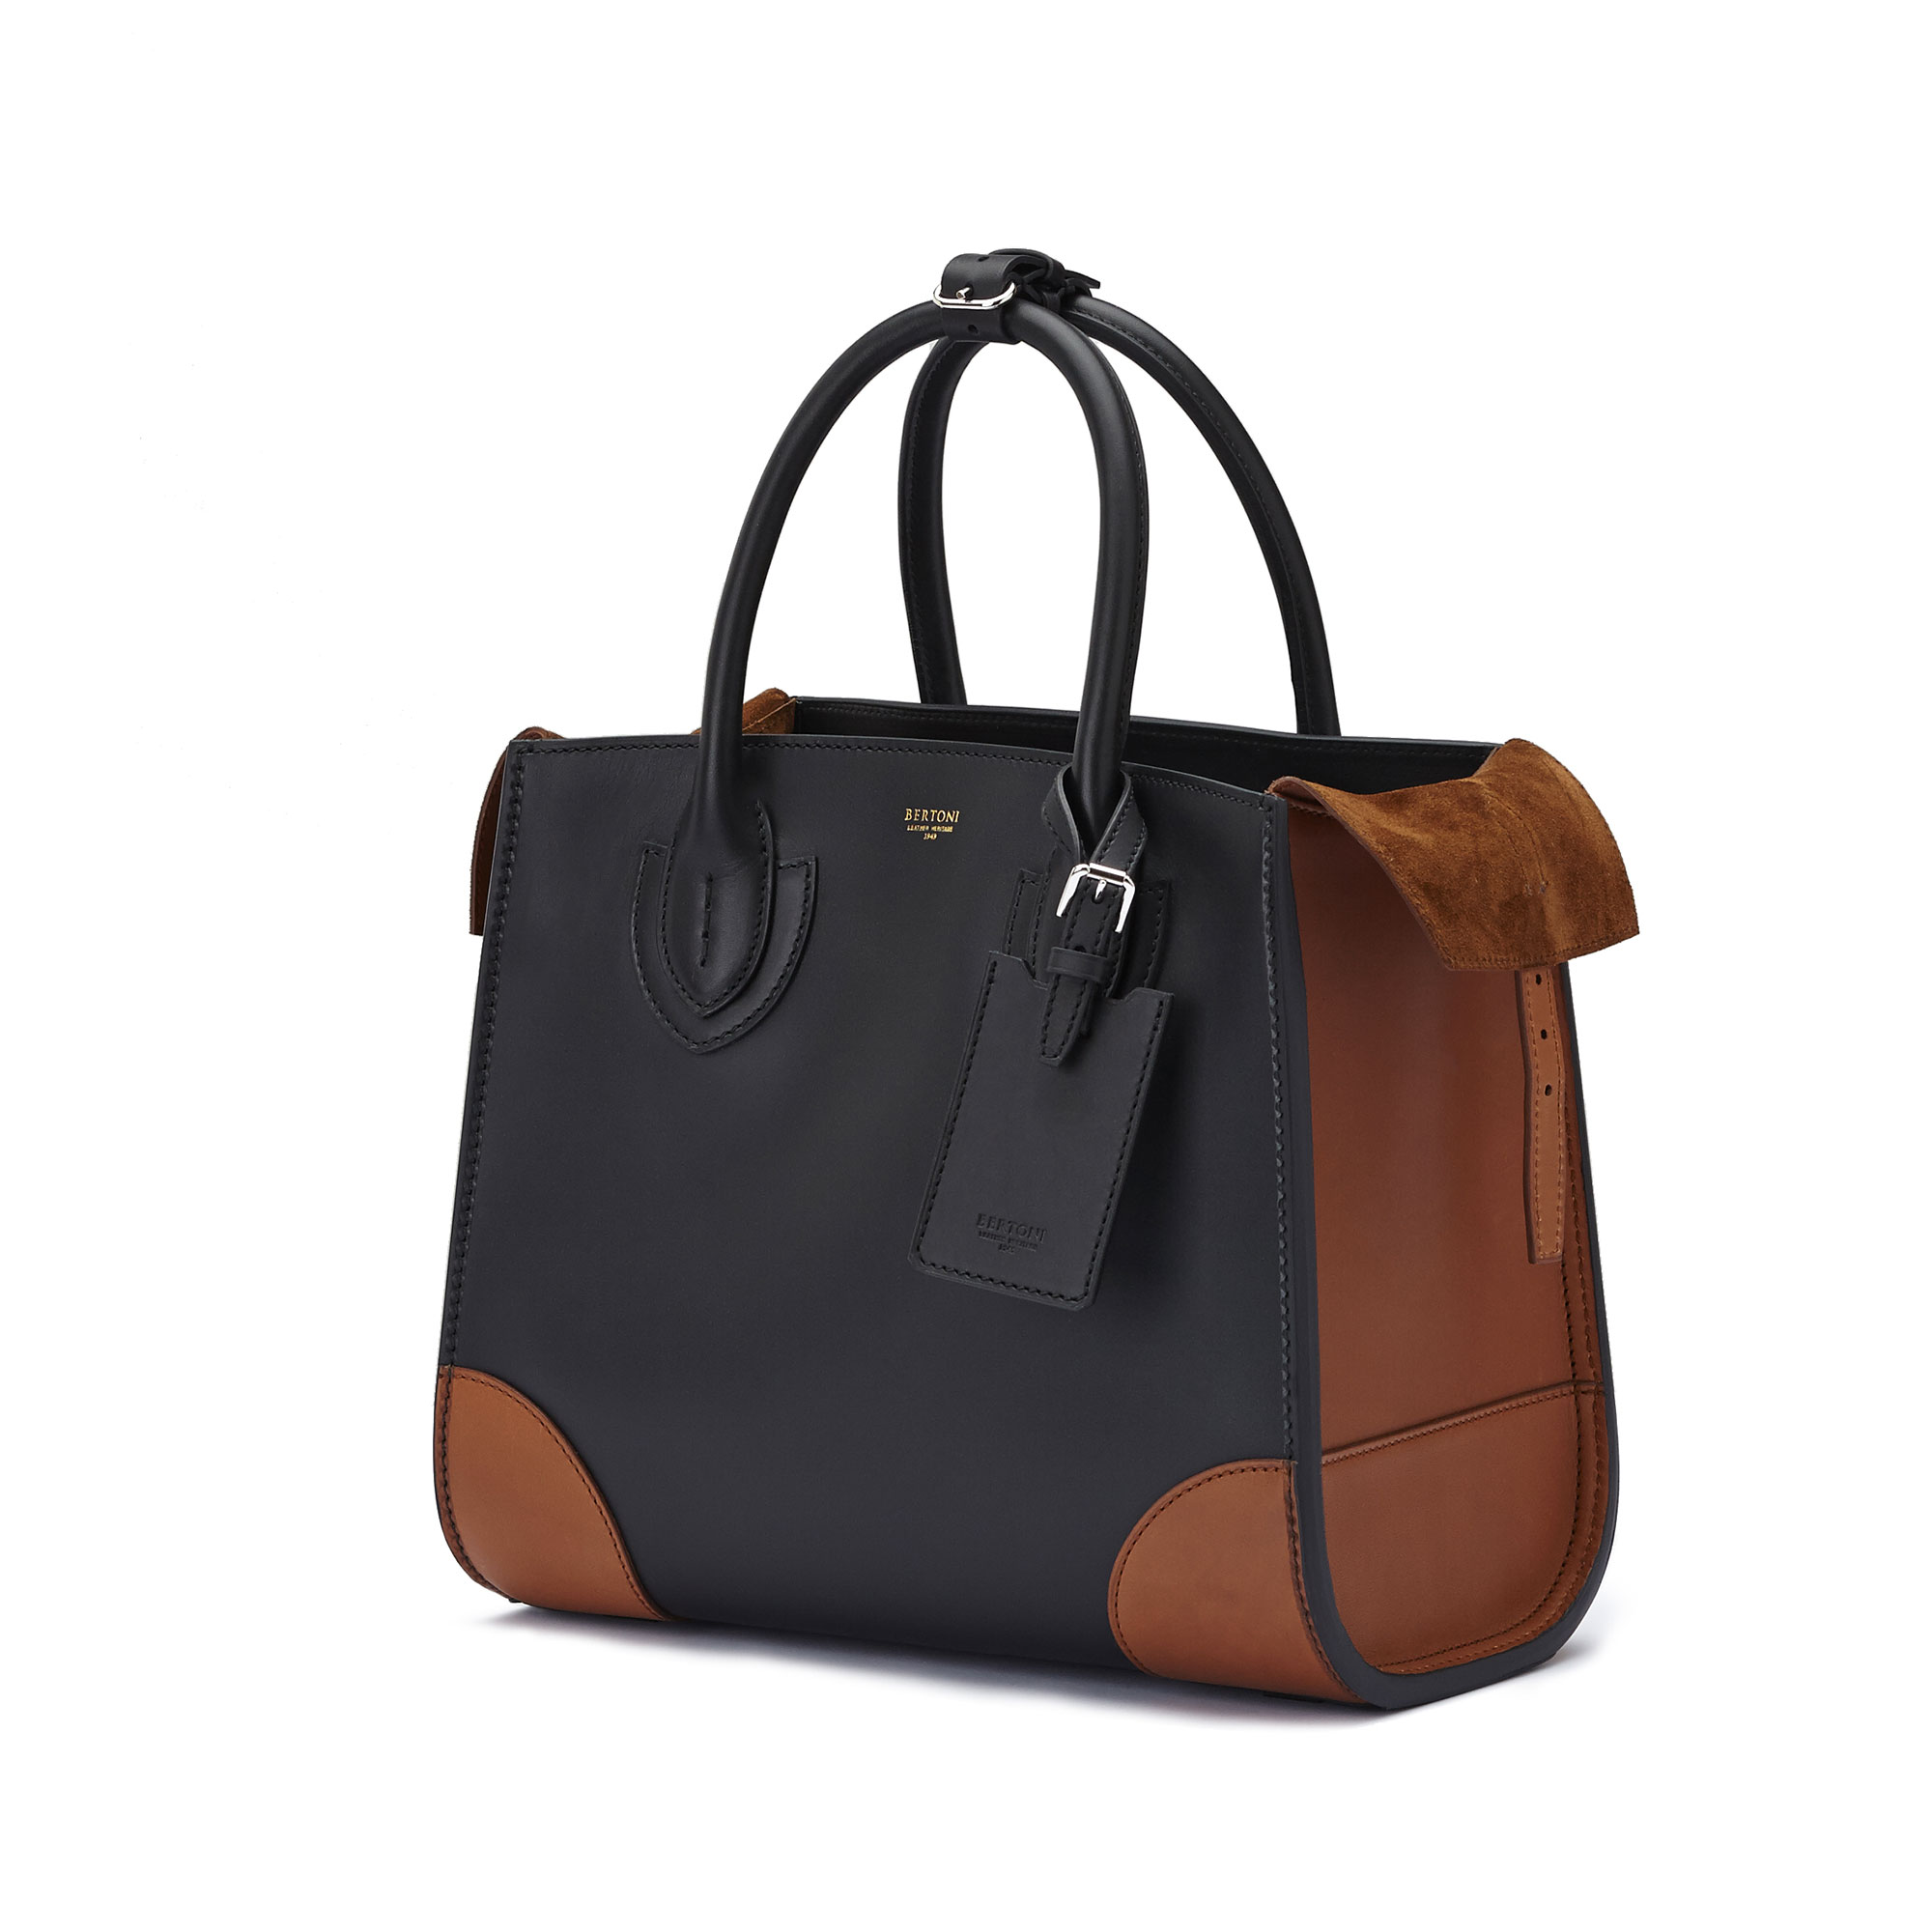 The black and terrabruciata french calf Darcy medium bag by Bertoni 1949 04